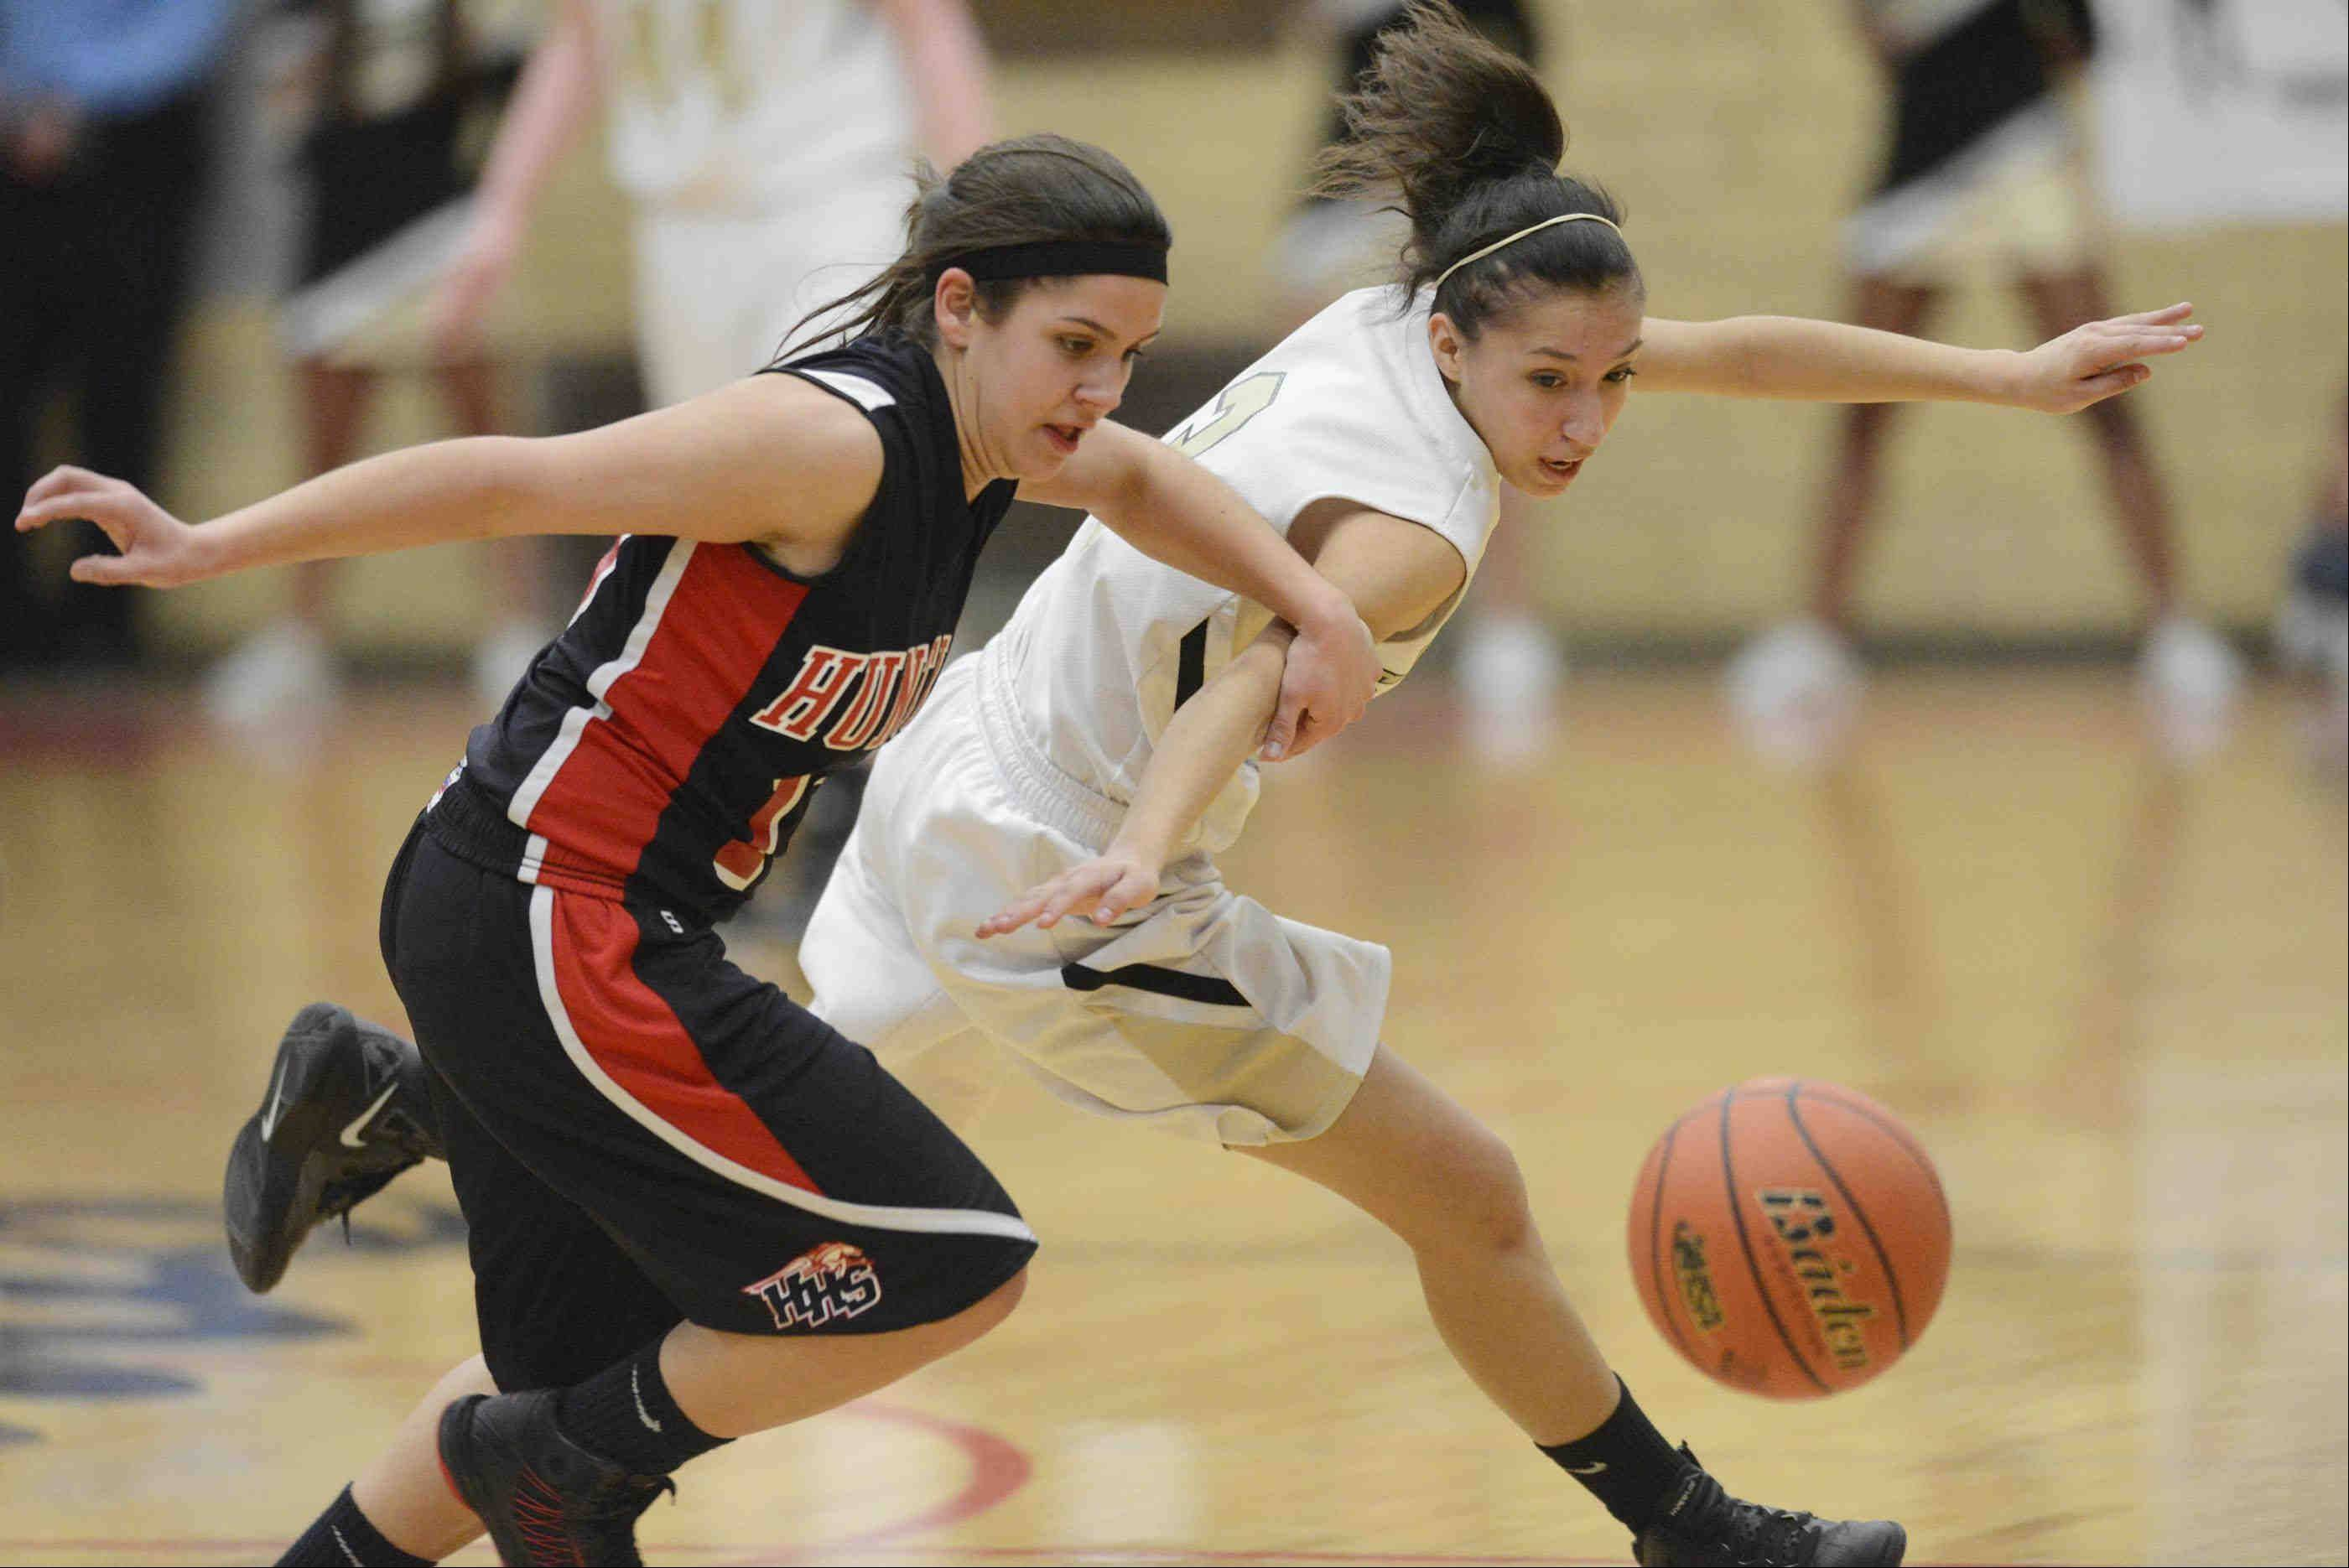 Streamwood's Kimberly Jimenez and Huntley's Kayla Barreto scramble for the ball.